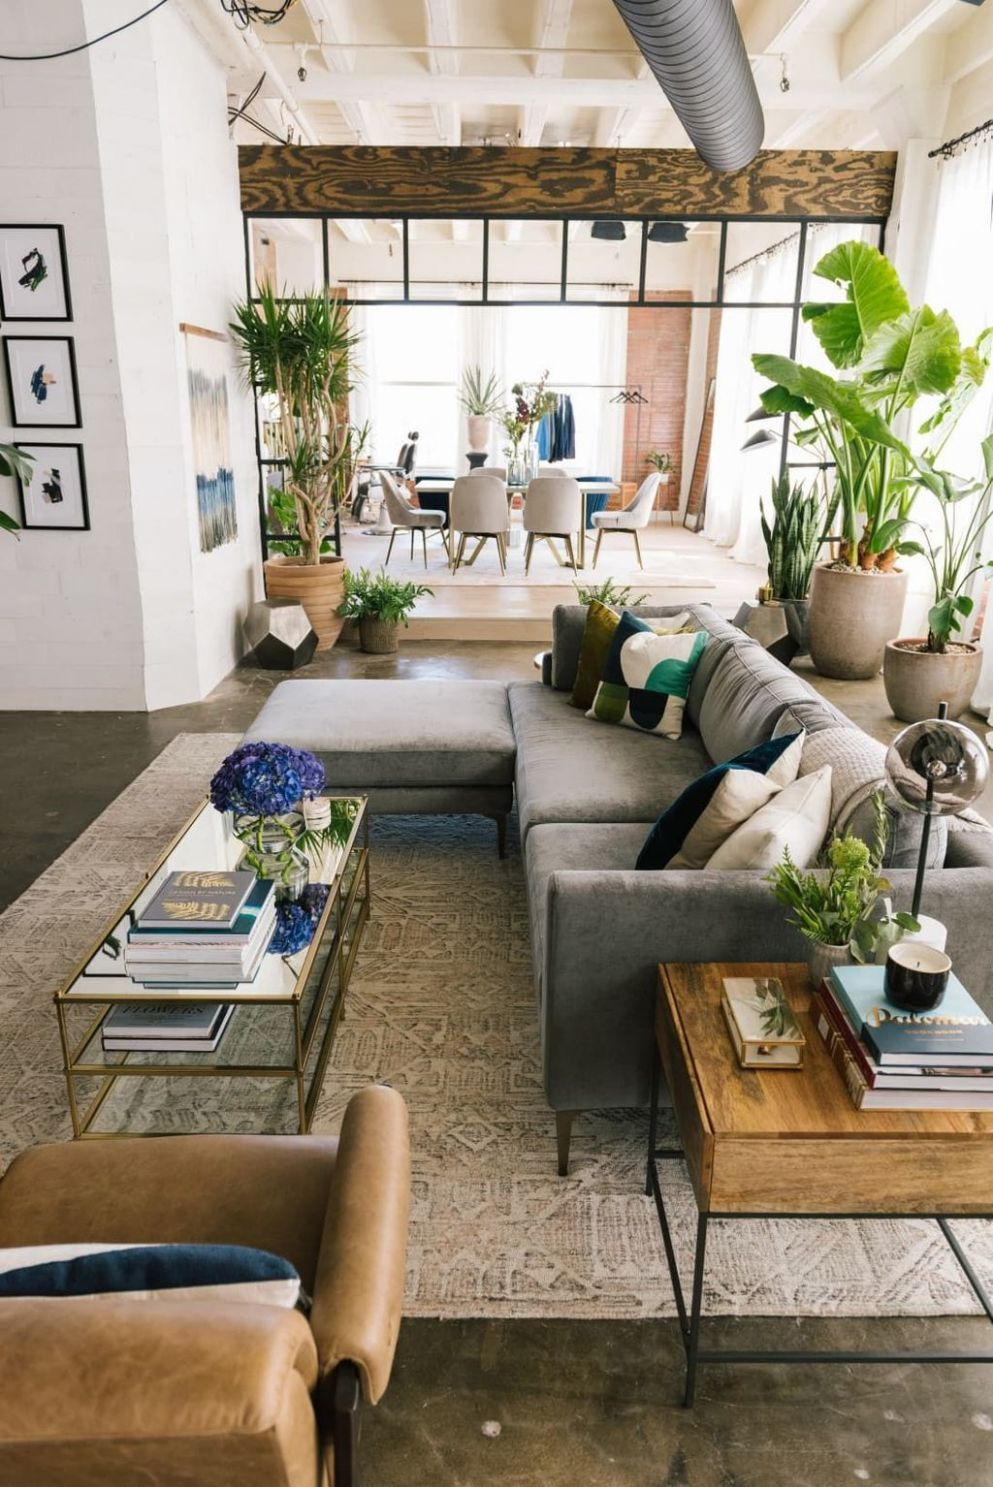 11 Stunning Loft Apartment Decorating Ideas You Should Try in 11 ...